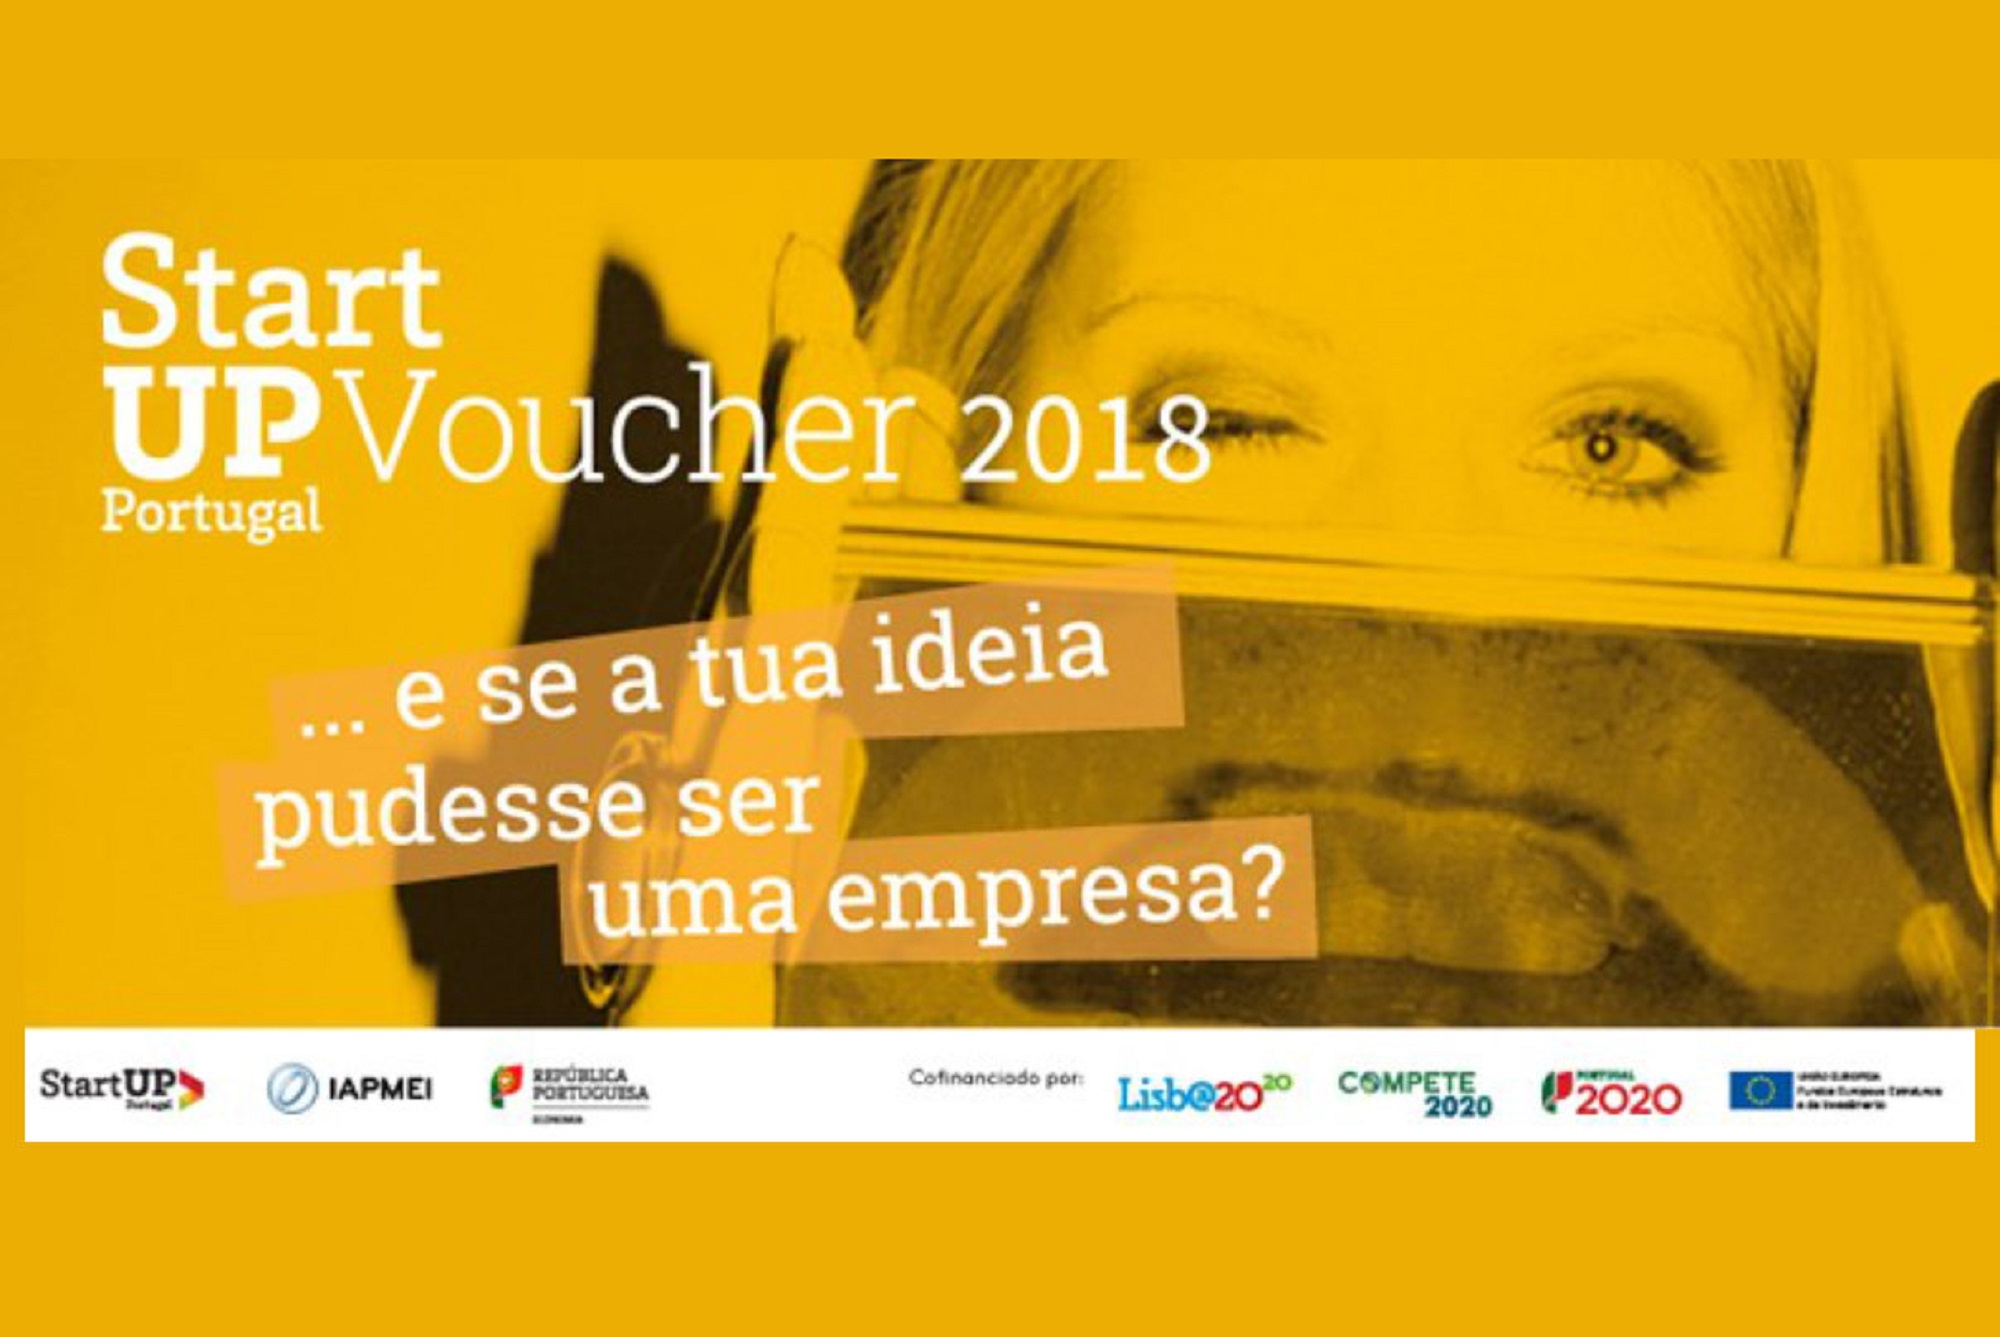 Abertas Candidaturas ao START-UP Voucher